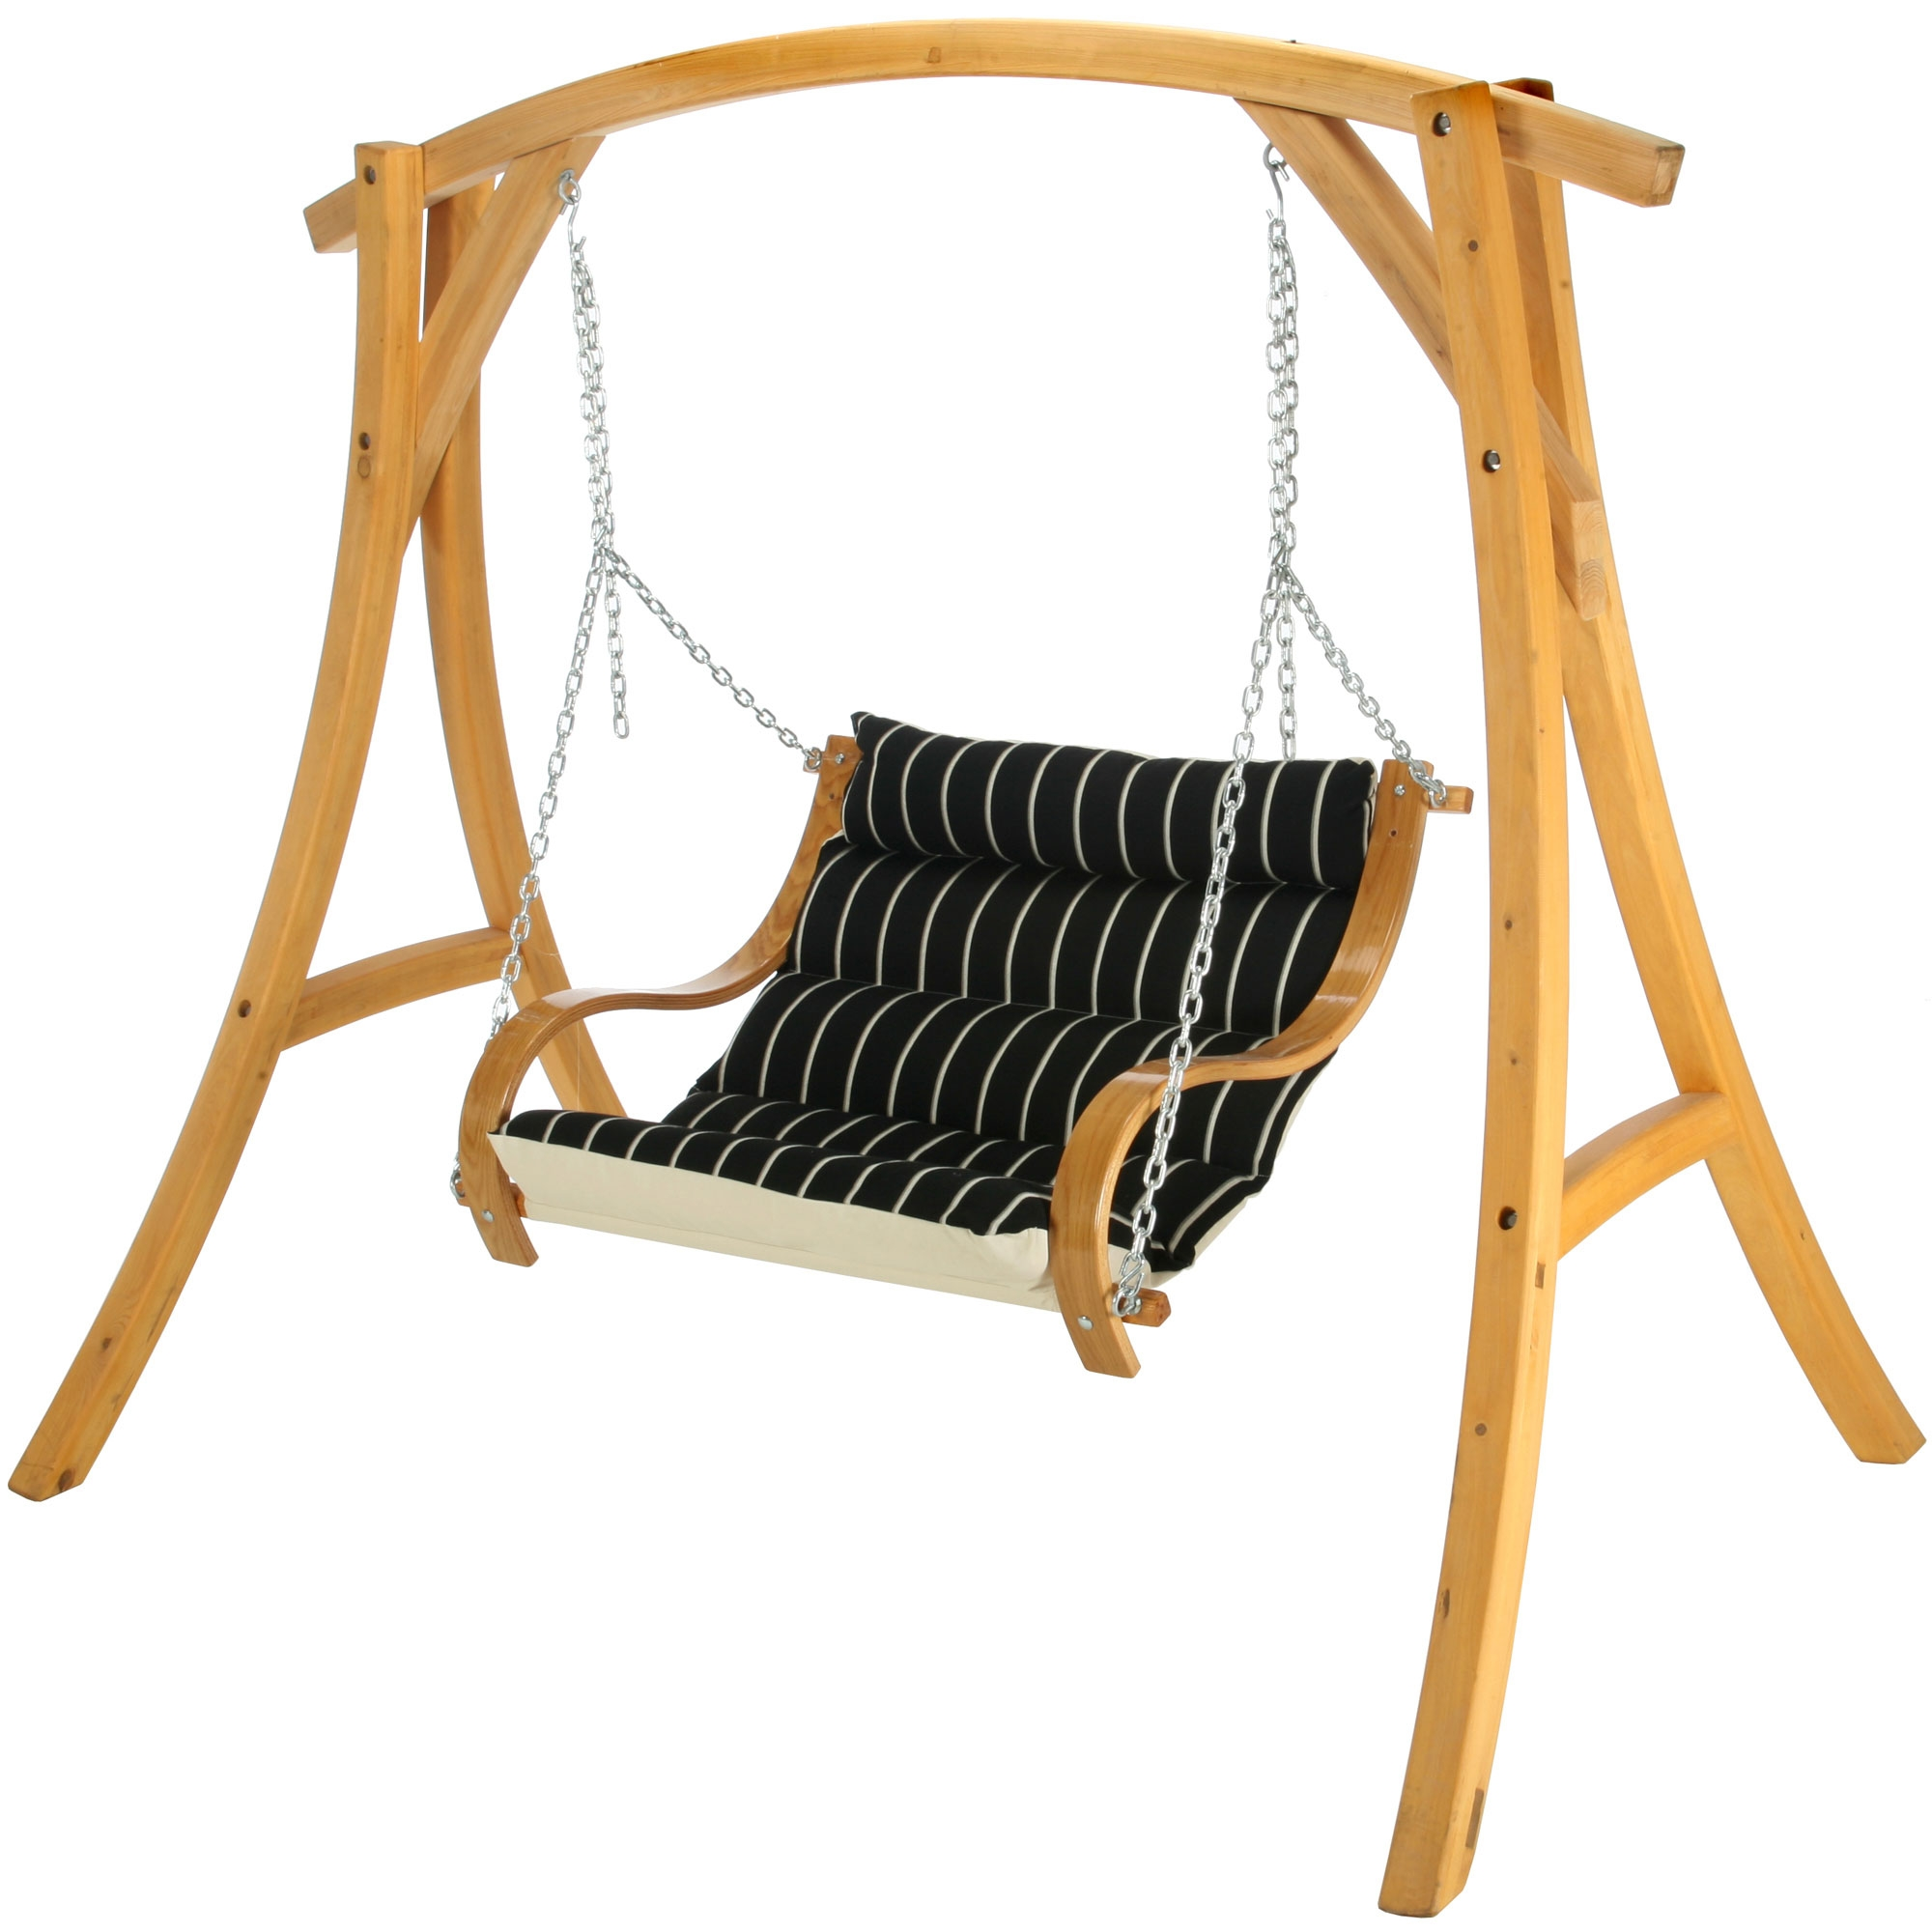 for chair ideas nytexas the bedroom wide of unique hammock swinging stand swing range wicker white plans